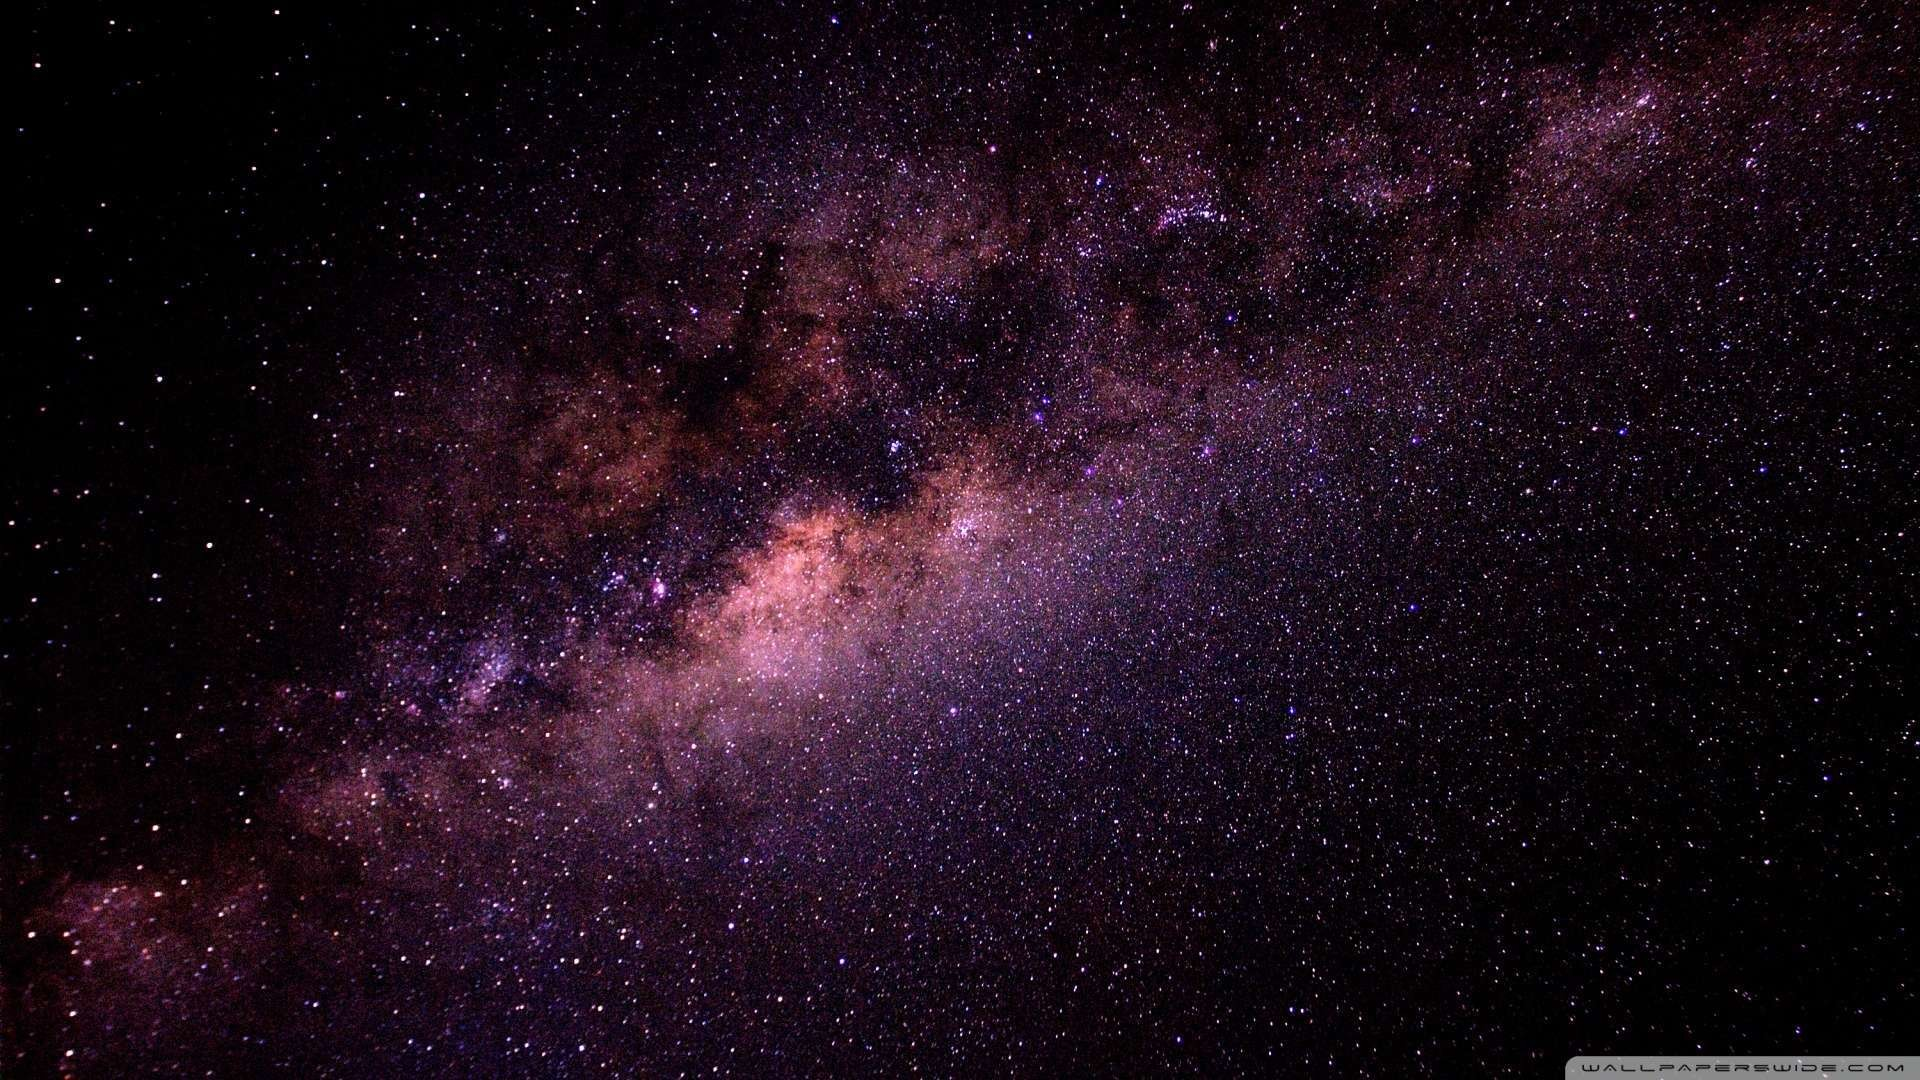 1920x1080 Milky Way Galaxy 2 Wallpaper 1080p HD